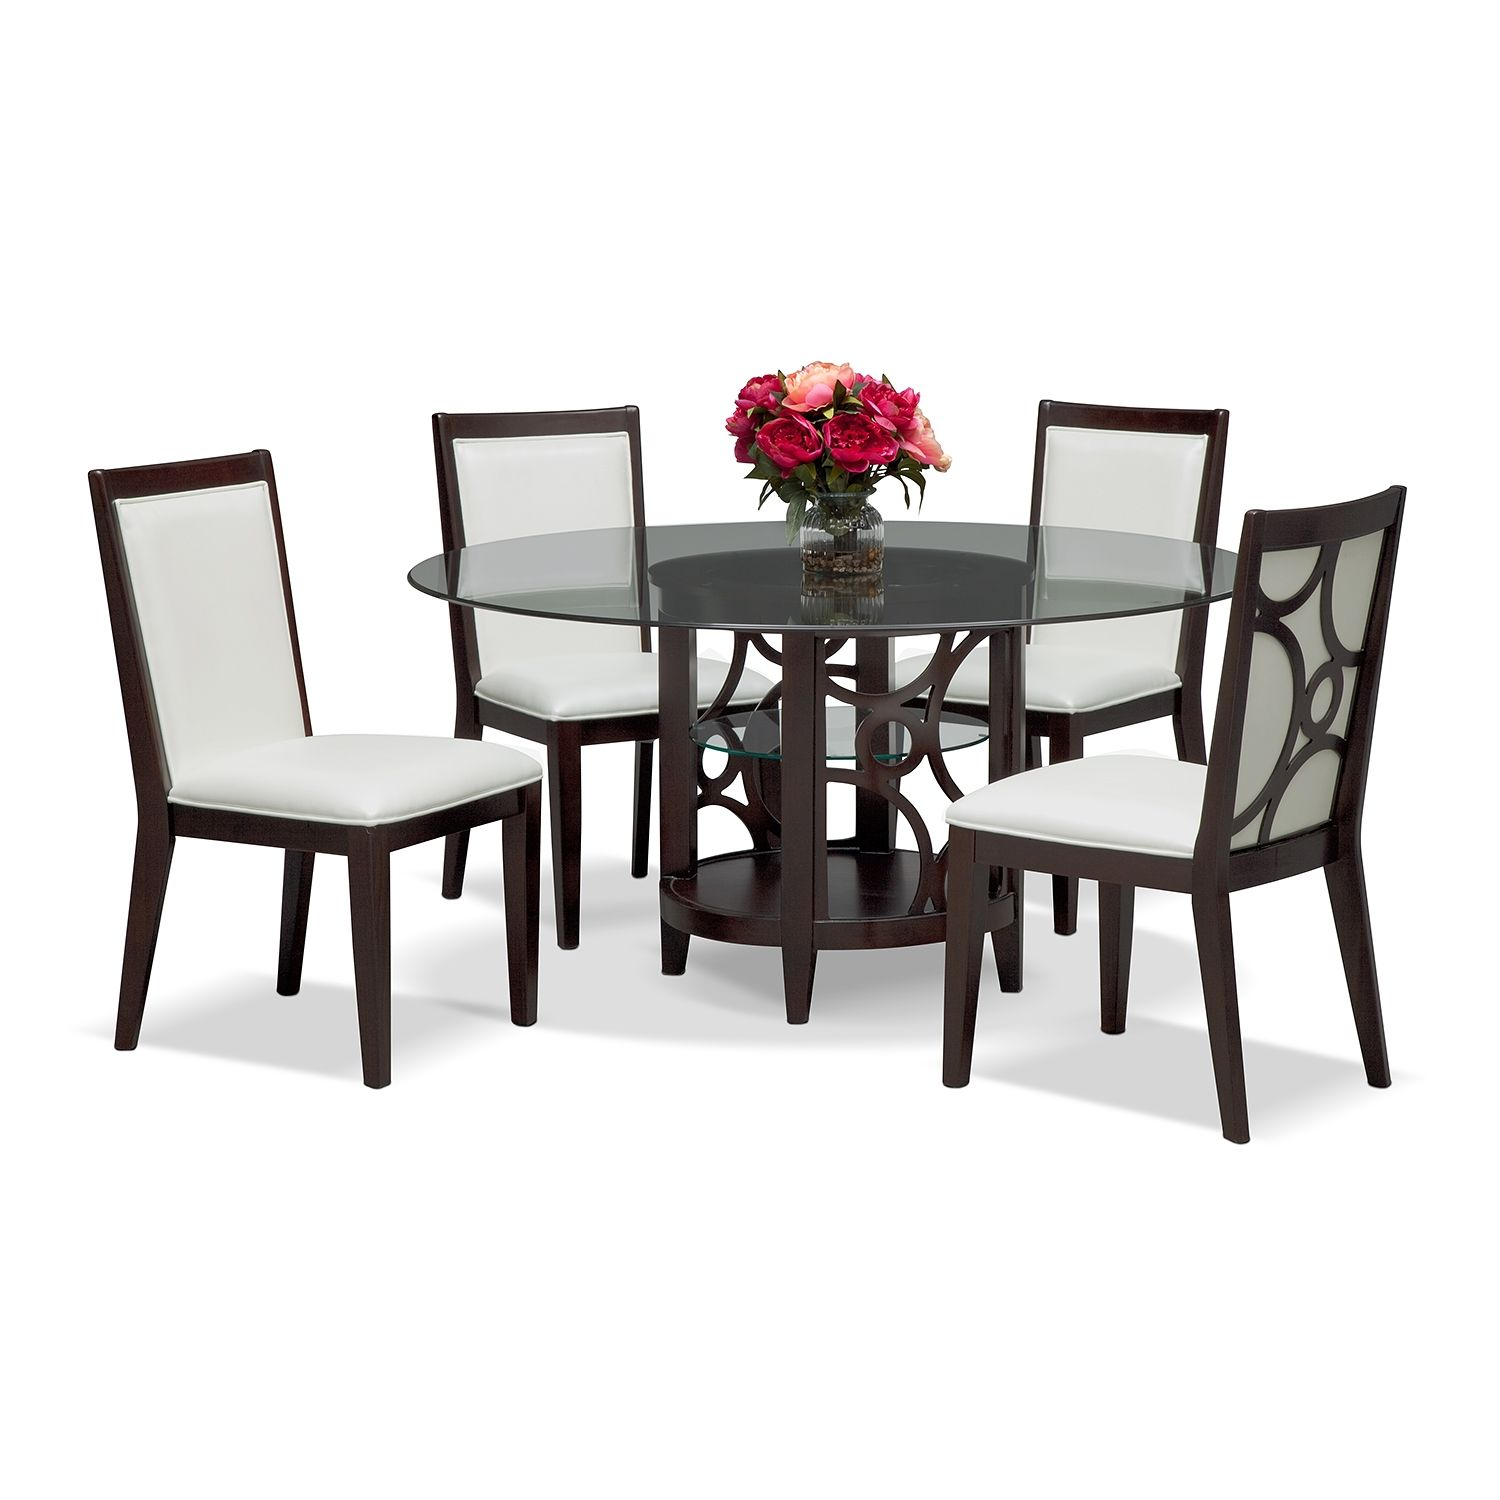 "Dining Room Furniture  Luna Pearl Ii 5 Pcdinette 60"" Table Gorgeous City Furniture Dining Room Inspiration Design"